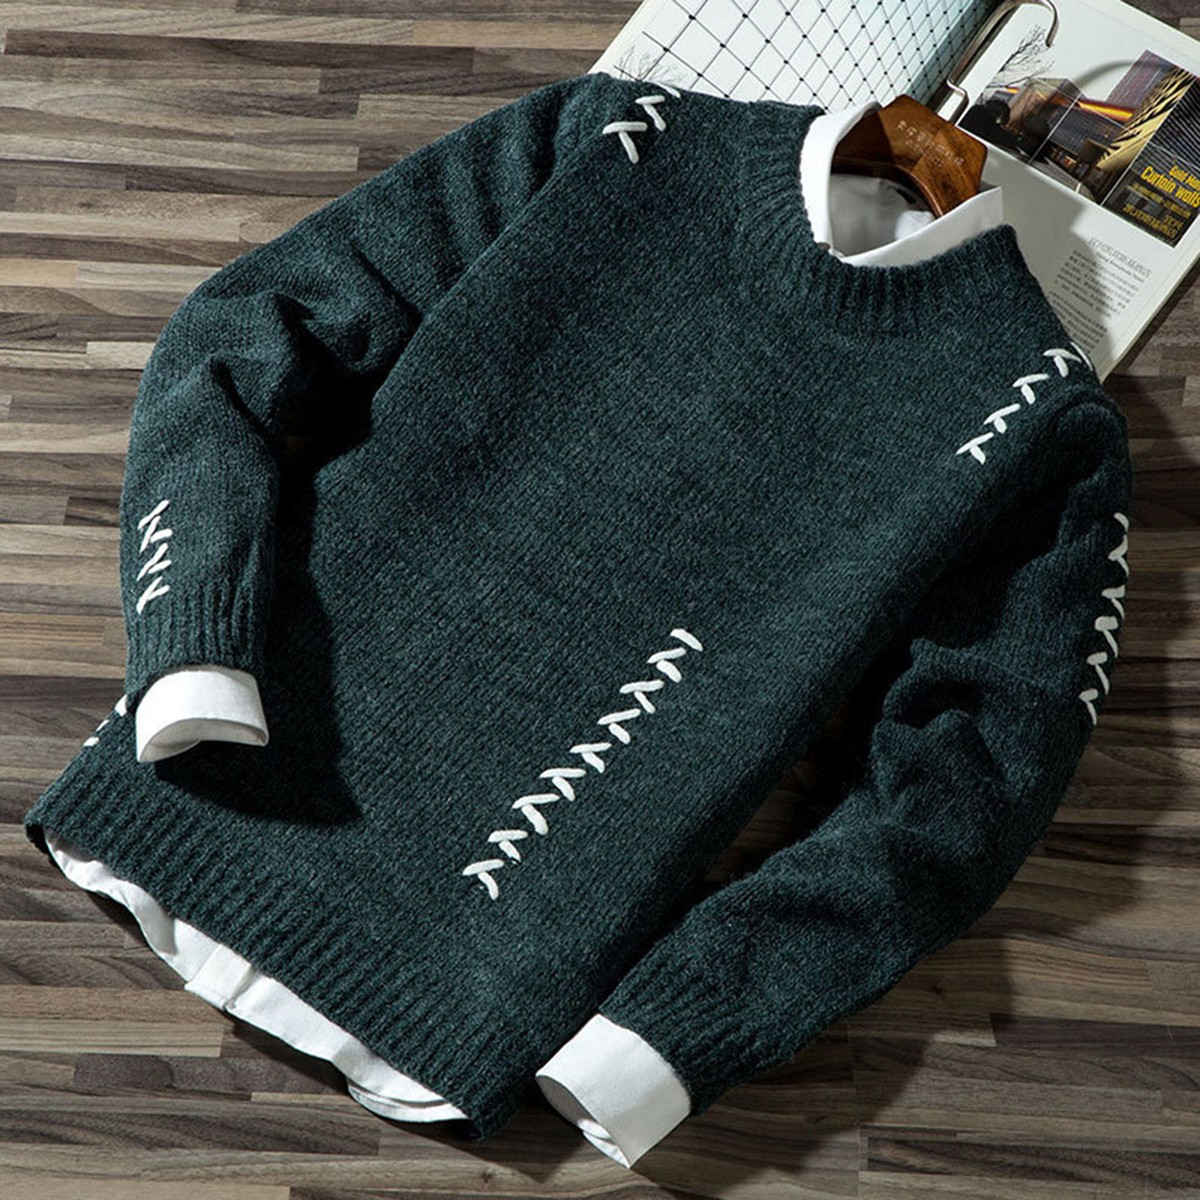 2019 Men's Casual Autumn Fashion Casual Strip Color Block Knitwear Jumper Pullover Sweater Sale Material Cotton Mens Sweaters